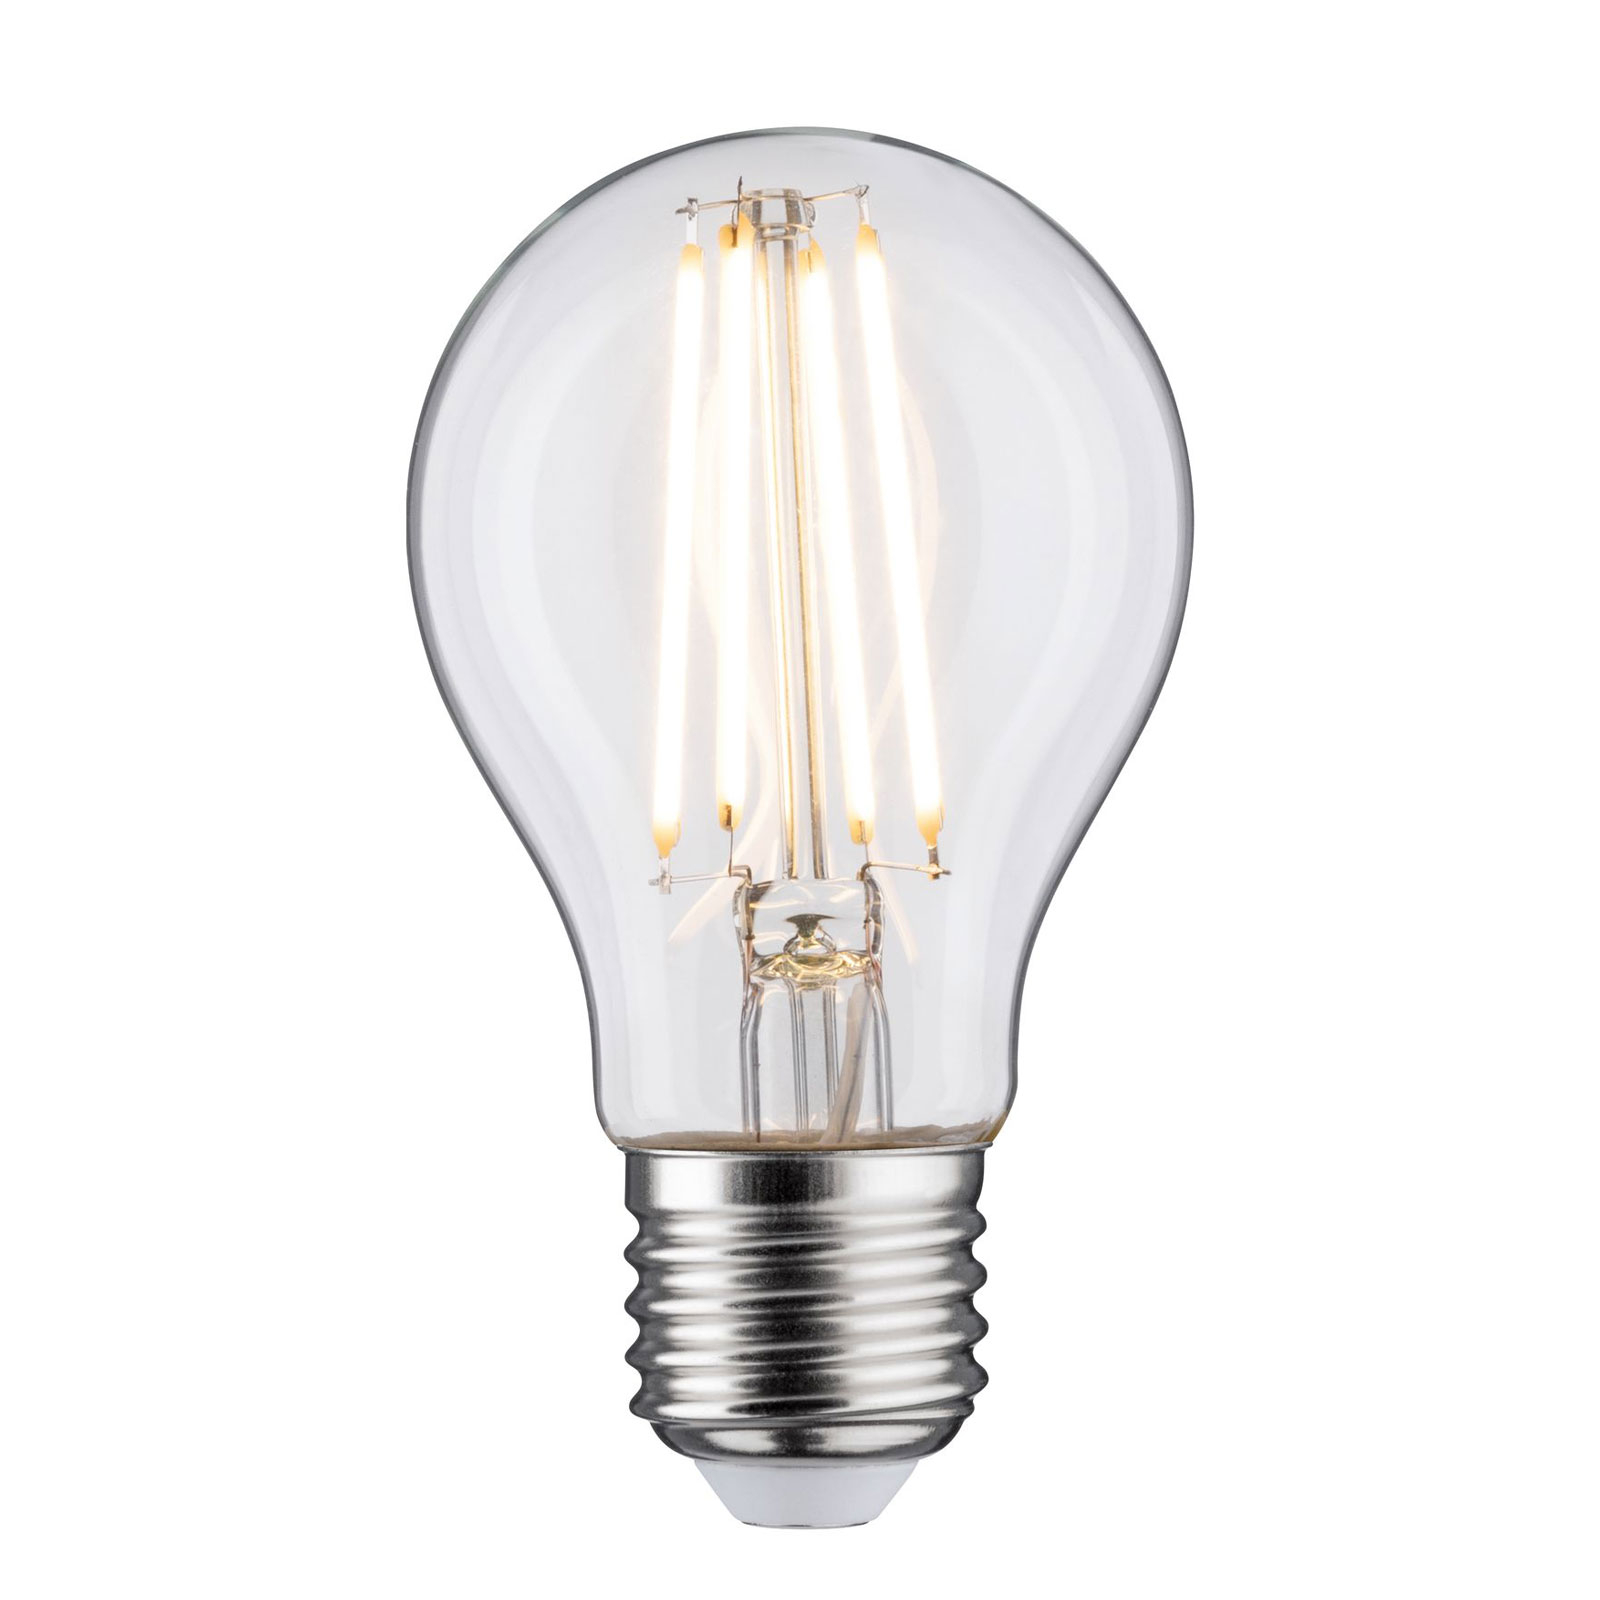 LED bulb E27 9 W filament 2,700 K clear dimmable_7601639_1